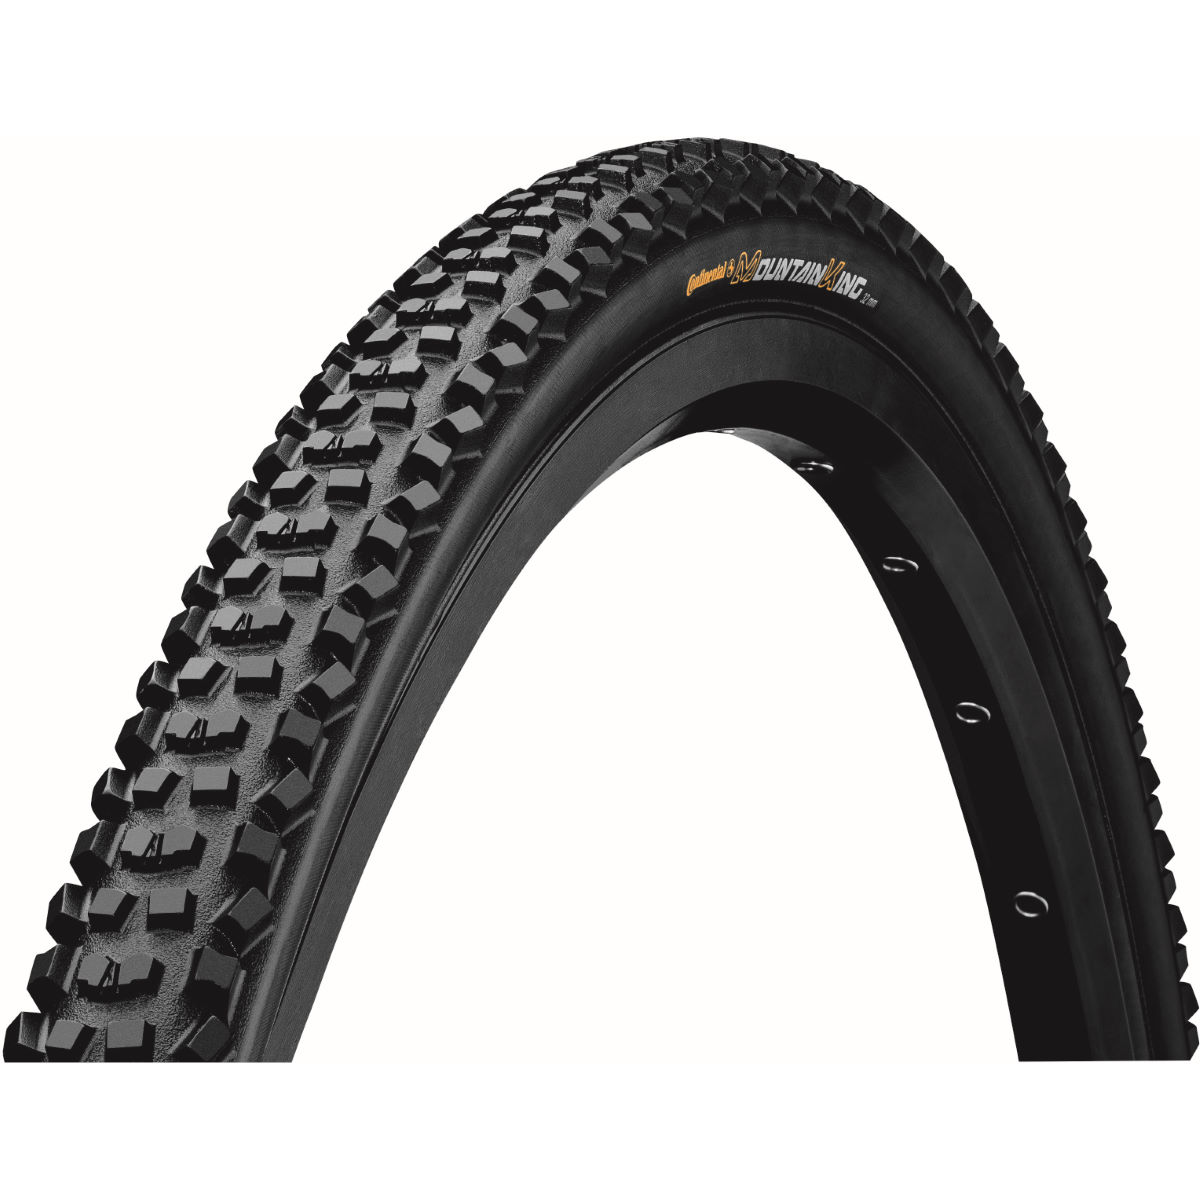 Continental Continental MountainKing CX Performance Folding Tyre   Tyres